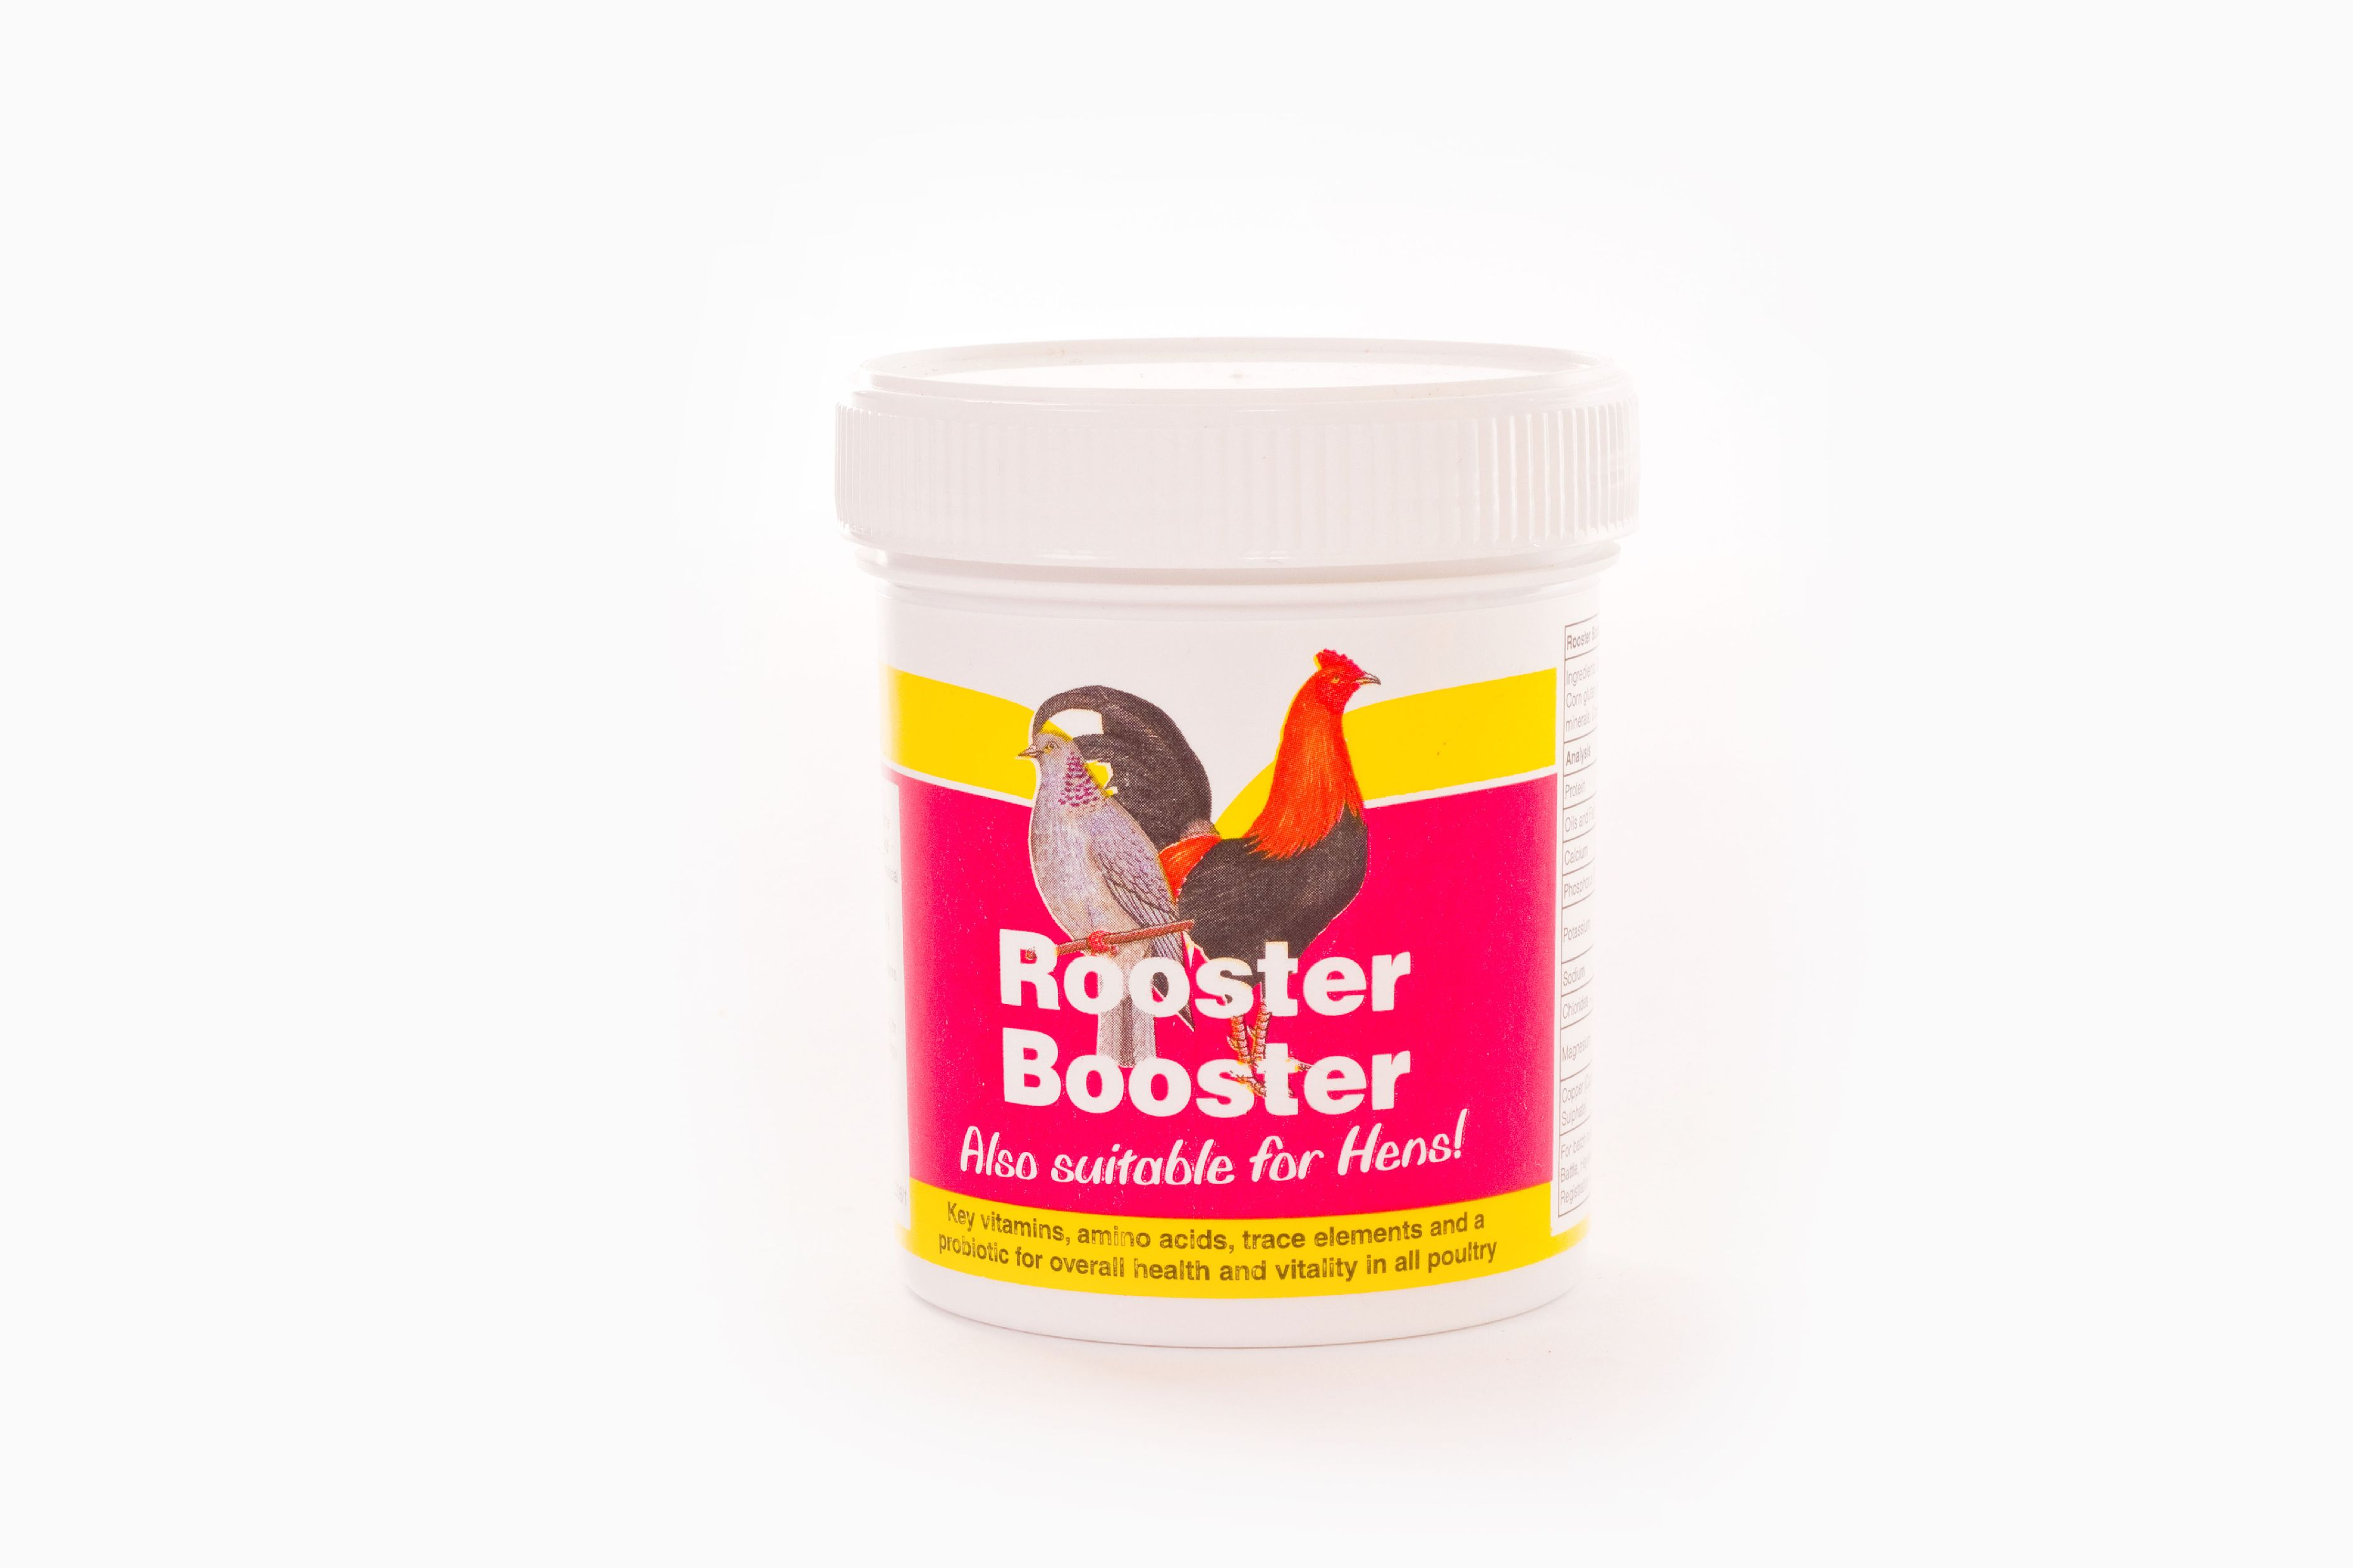 Battles Rooster Booster